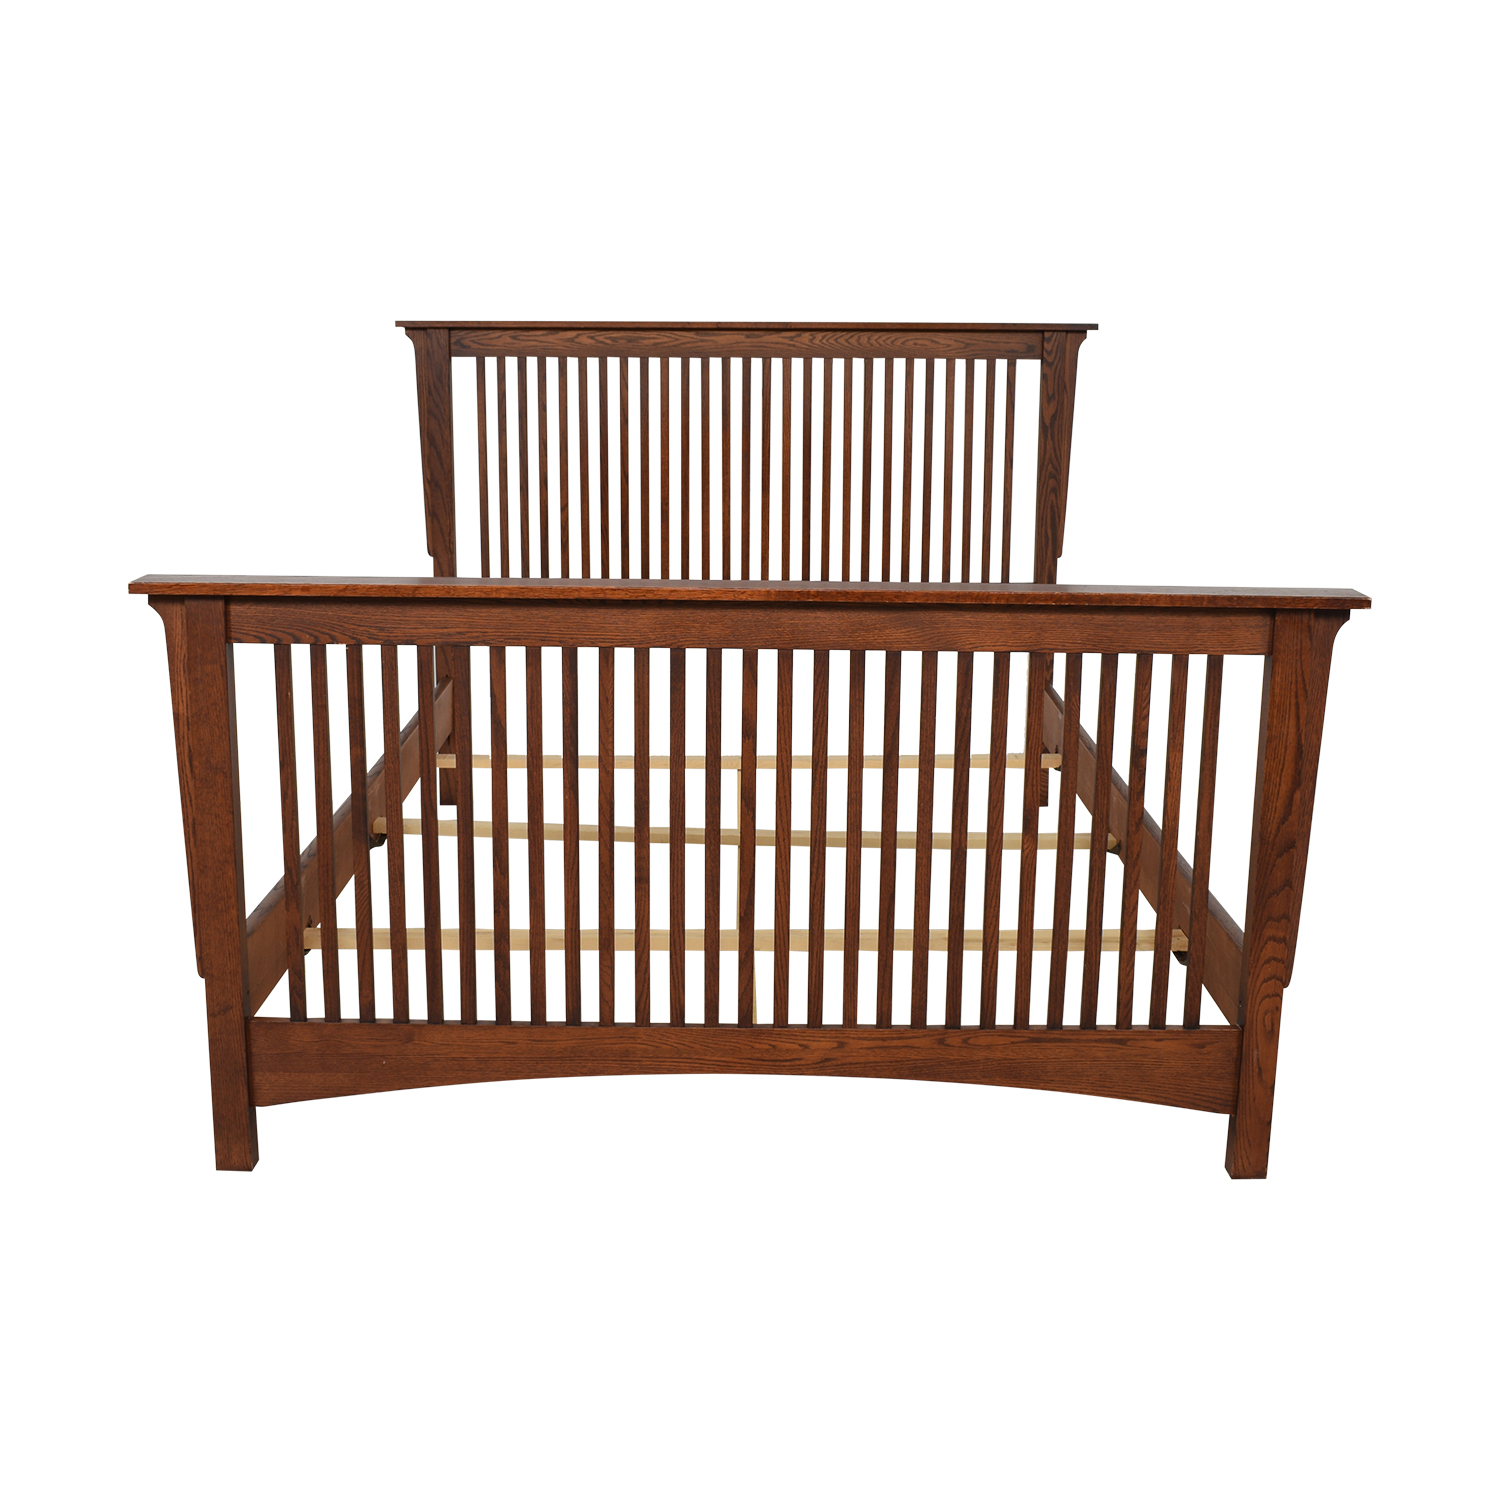 76 Off Thomasville Thomasville Queen Spindle Bed Frame Beds